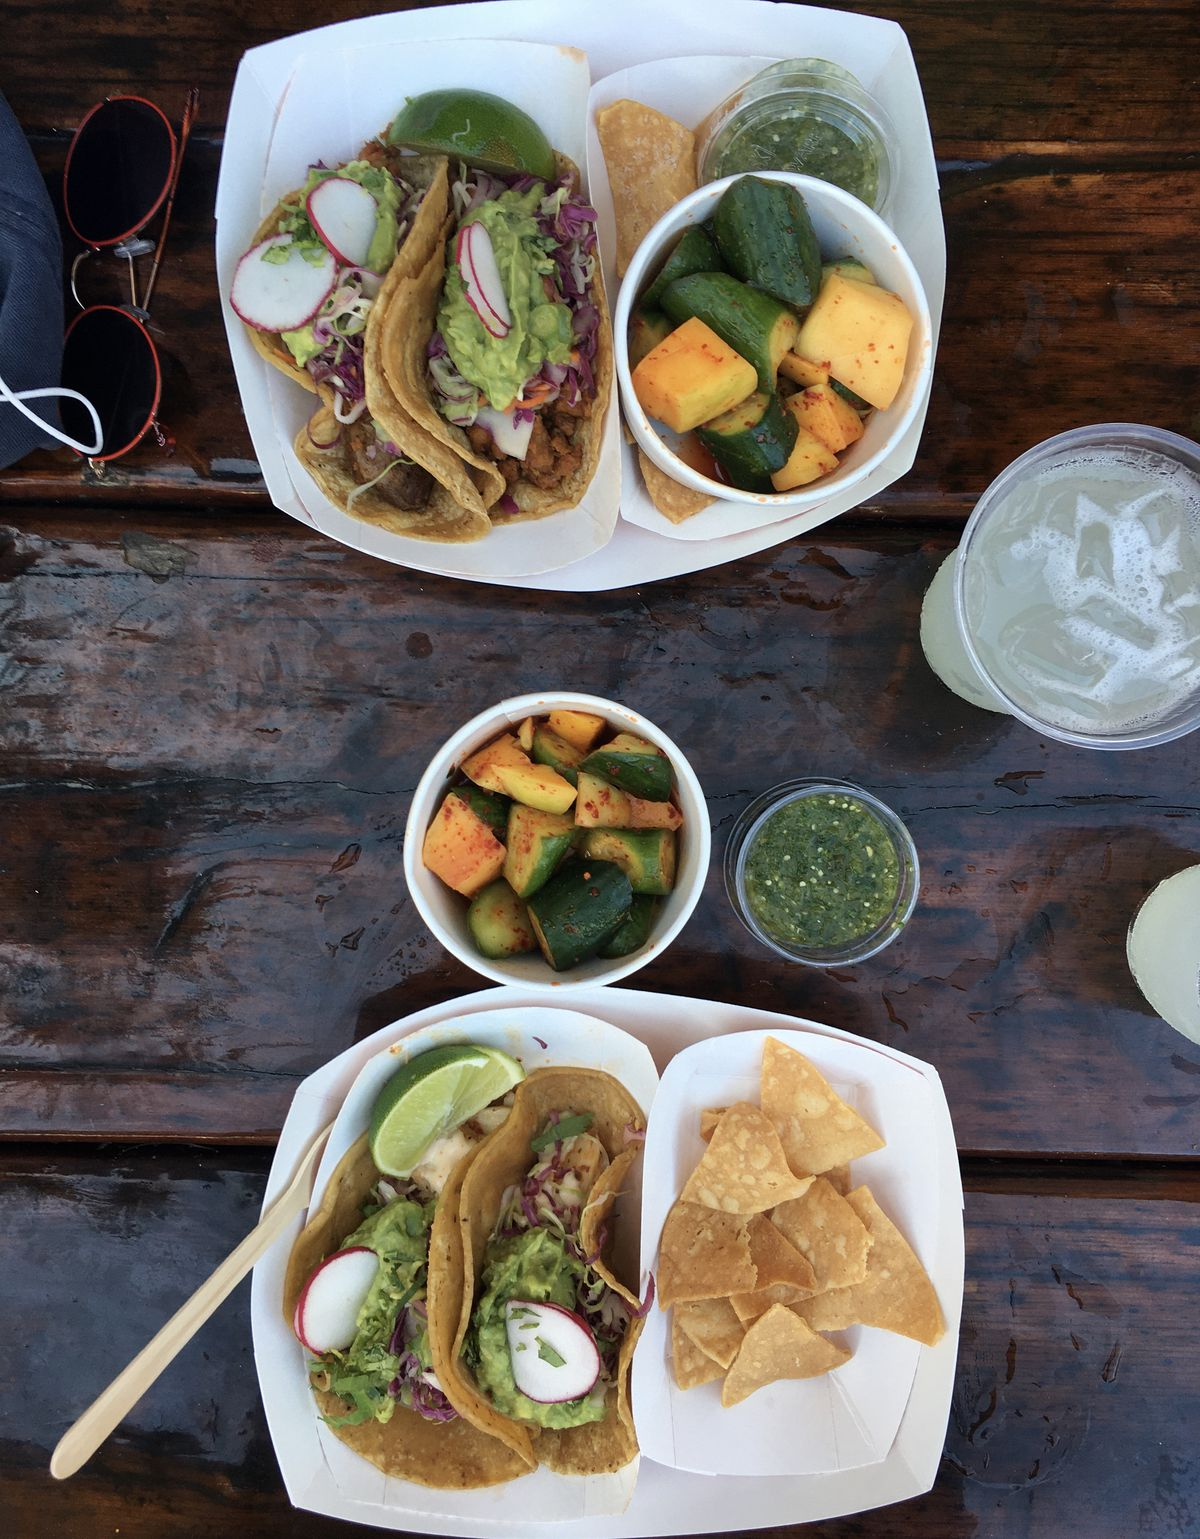 An overhead photo of to-go containers of chips, tacos, lime, radish, and summer vegetables, all of which rest on a wooden picnic table